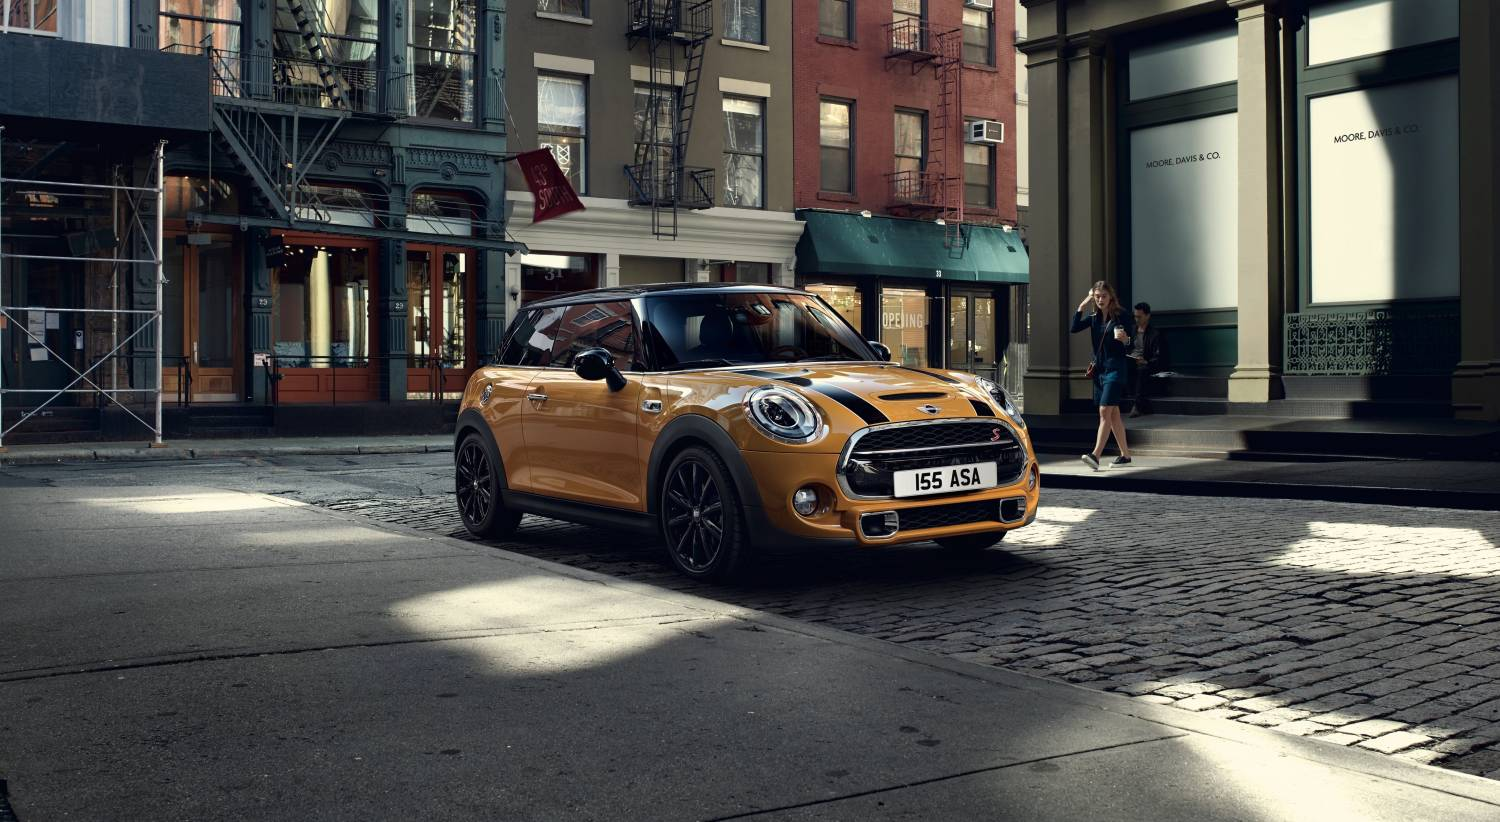 Cooper S 3 door Hatch With Chili Pack Volcanic Orange Static Lifestyle Front 3 4 Image New Car 2017 High Resolution JPEG 2